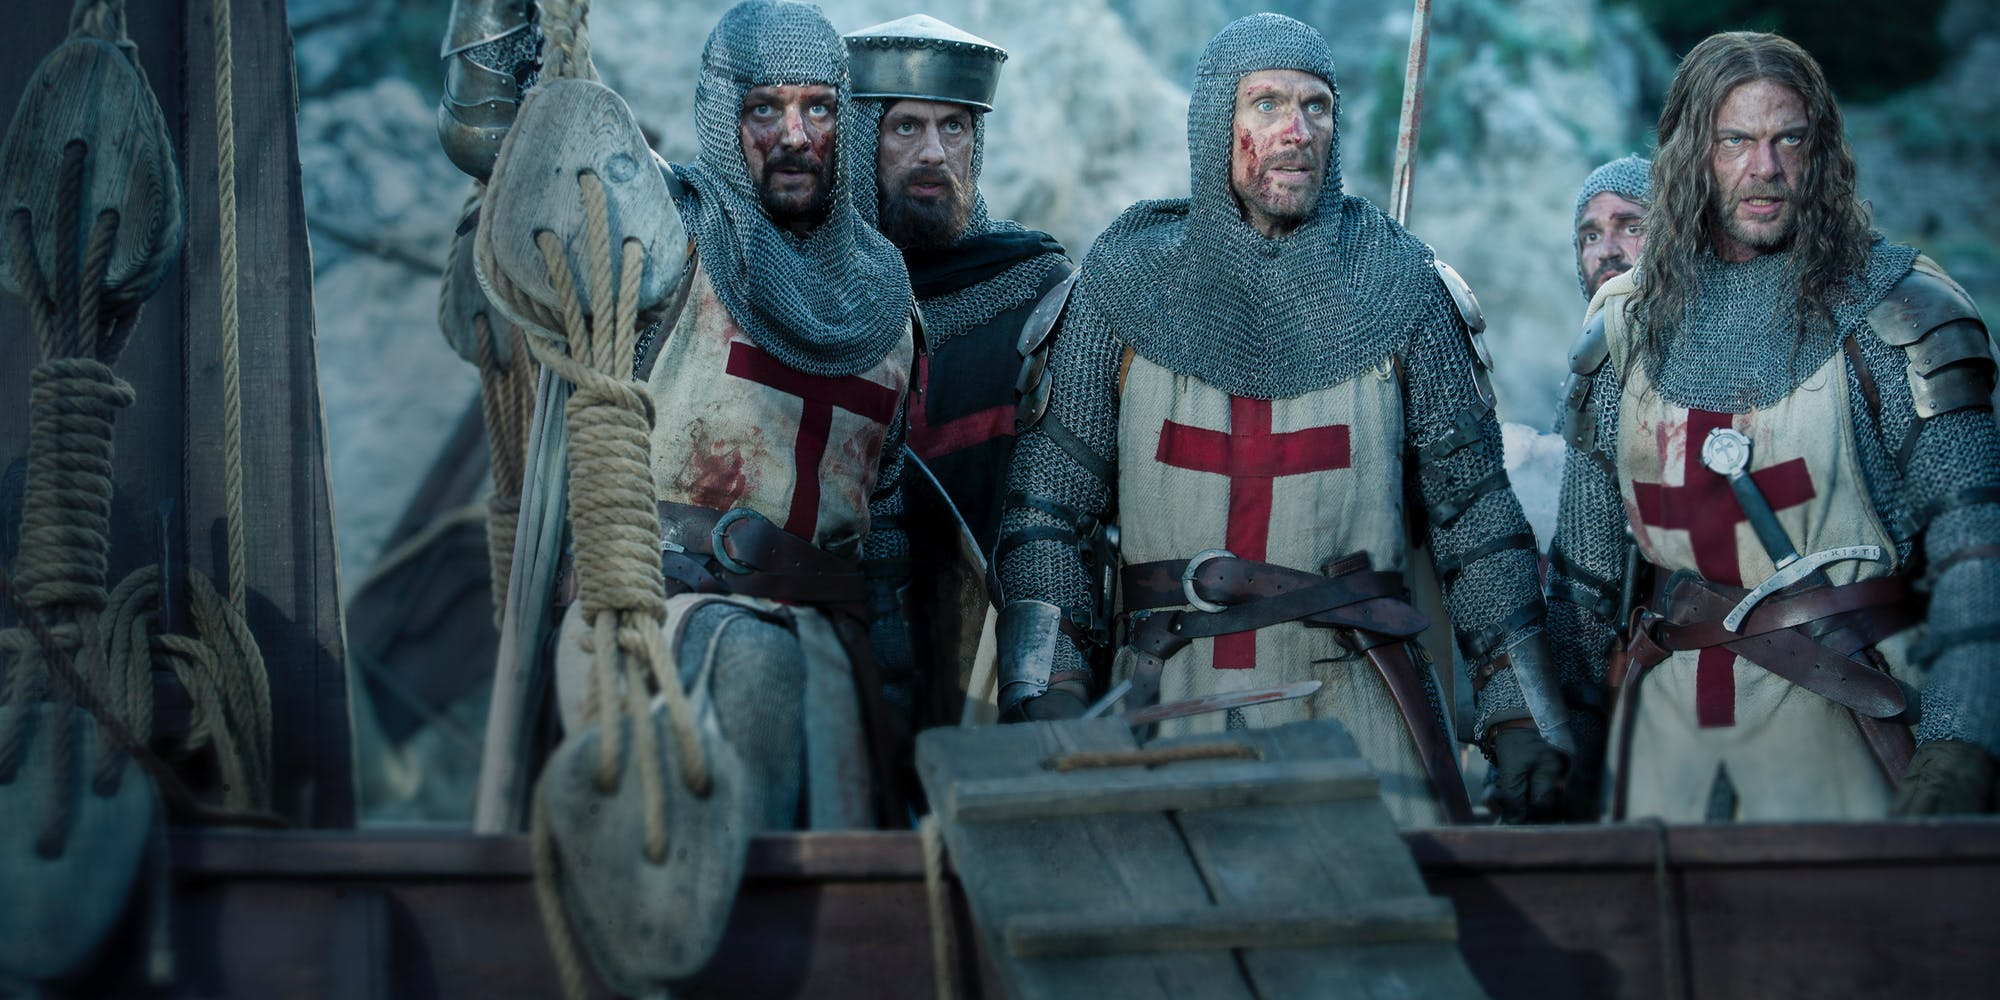 The Templars in Knightfall